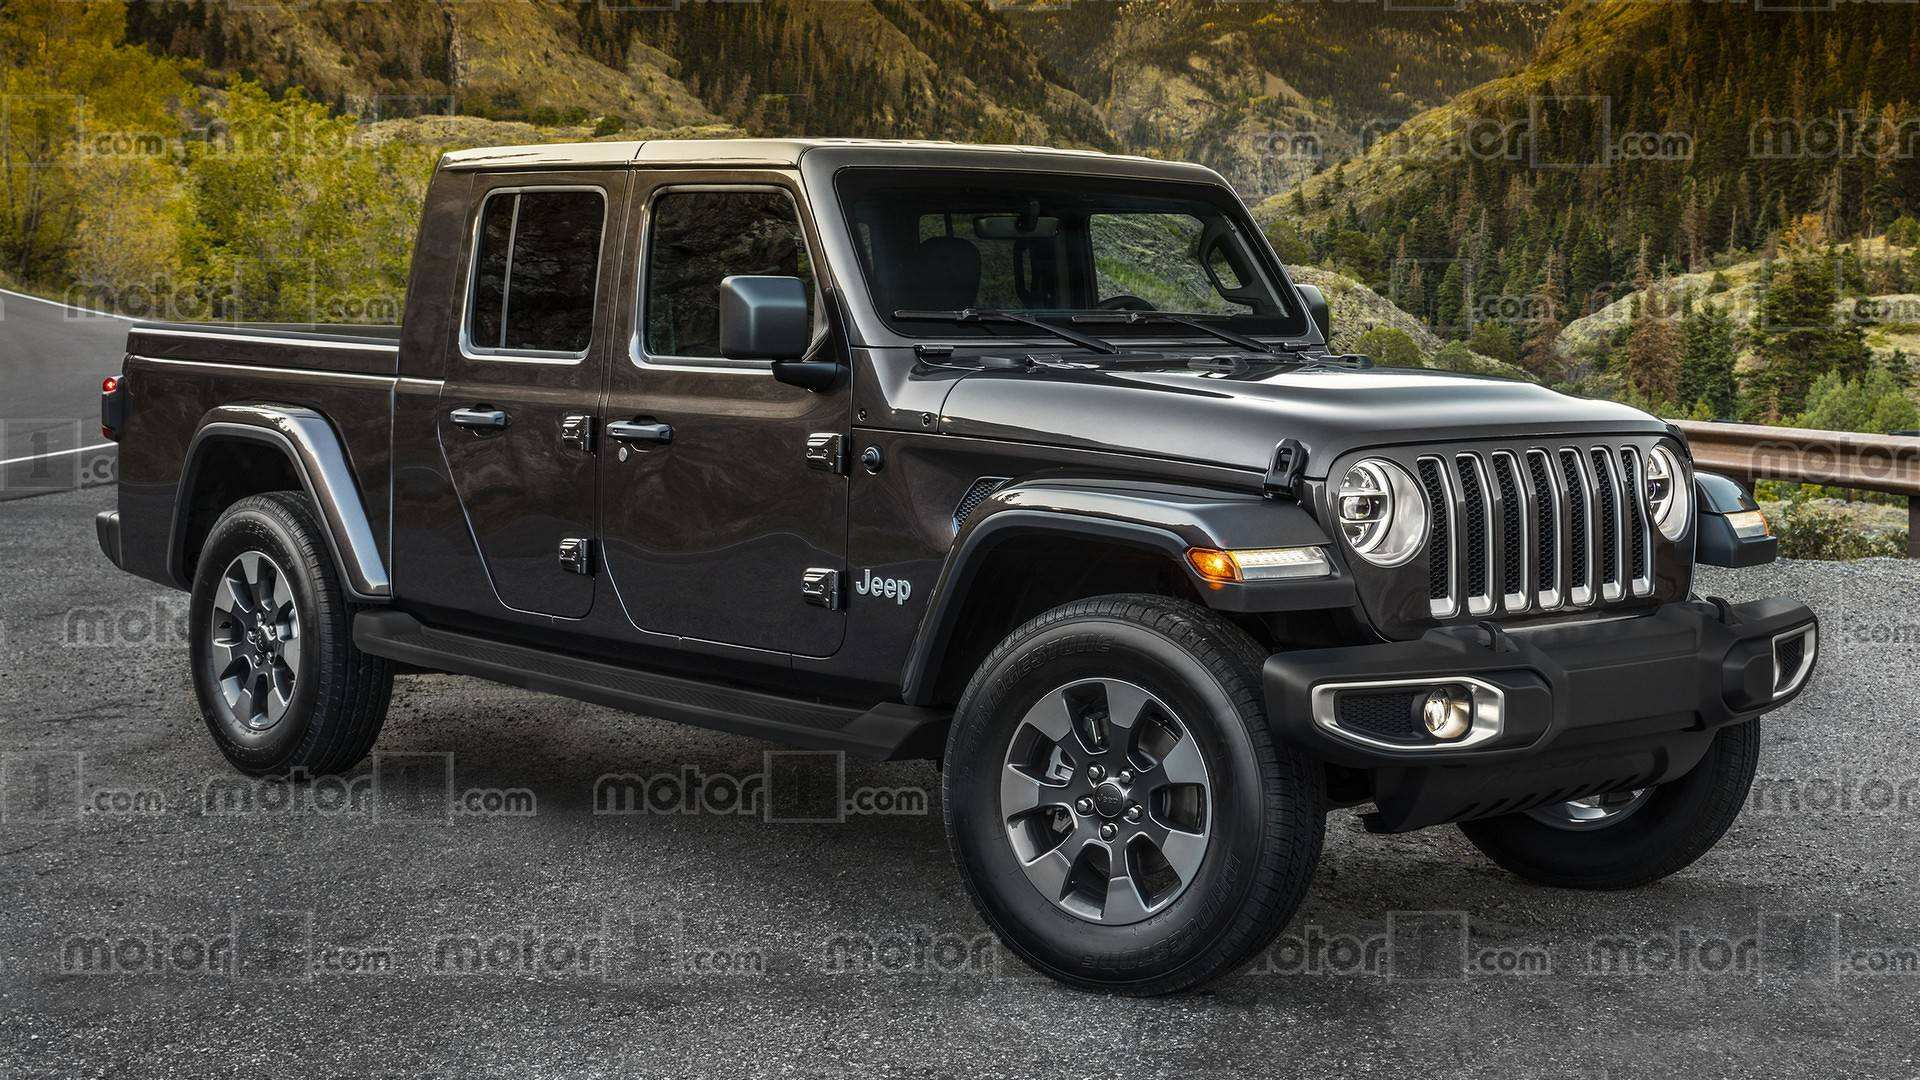 38 All New 2019 Jeep Pics Picture by 2019 Jeep Pics